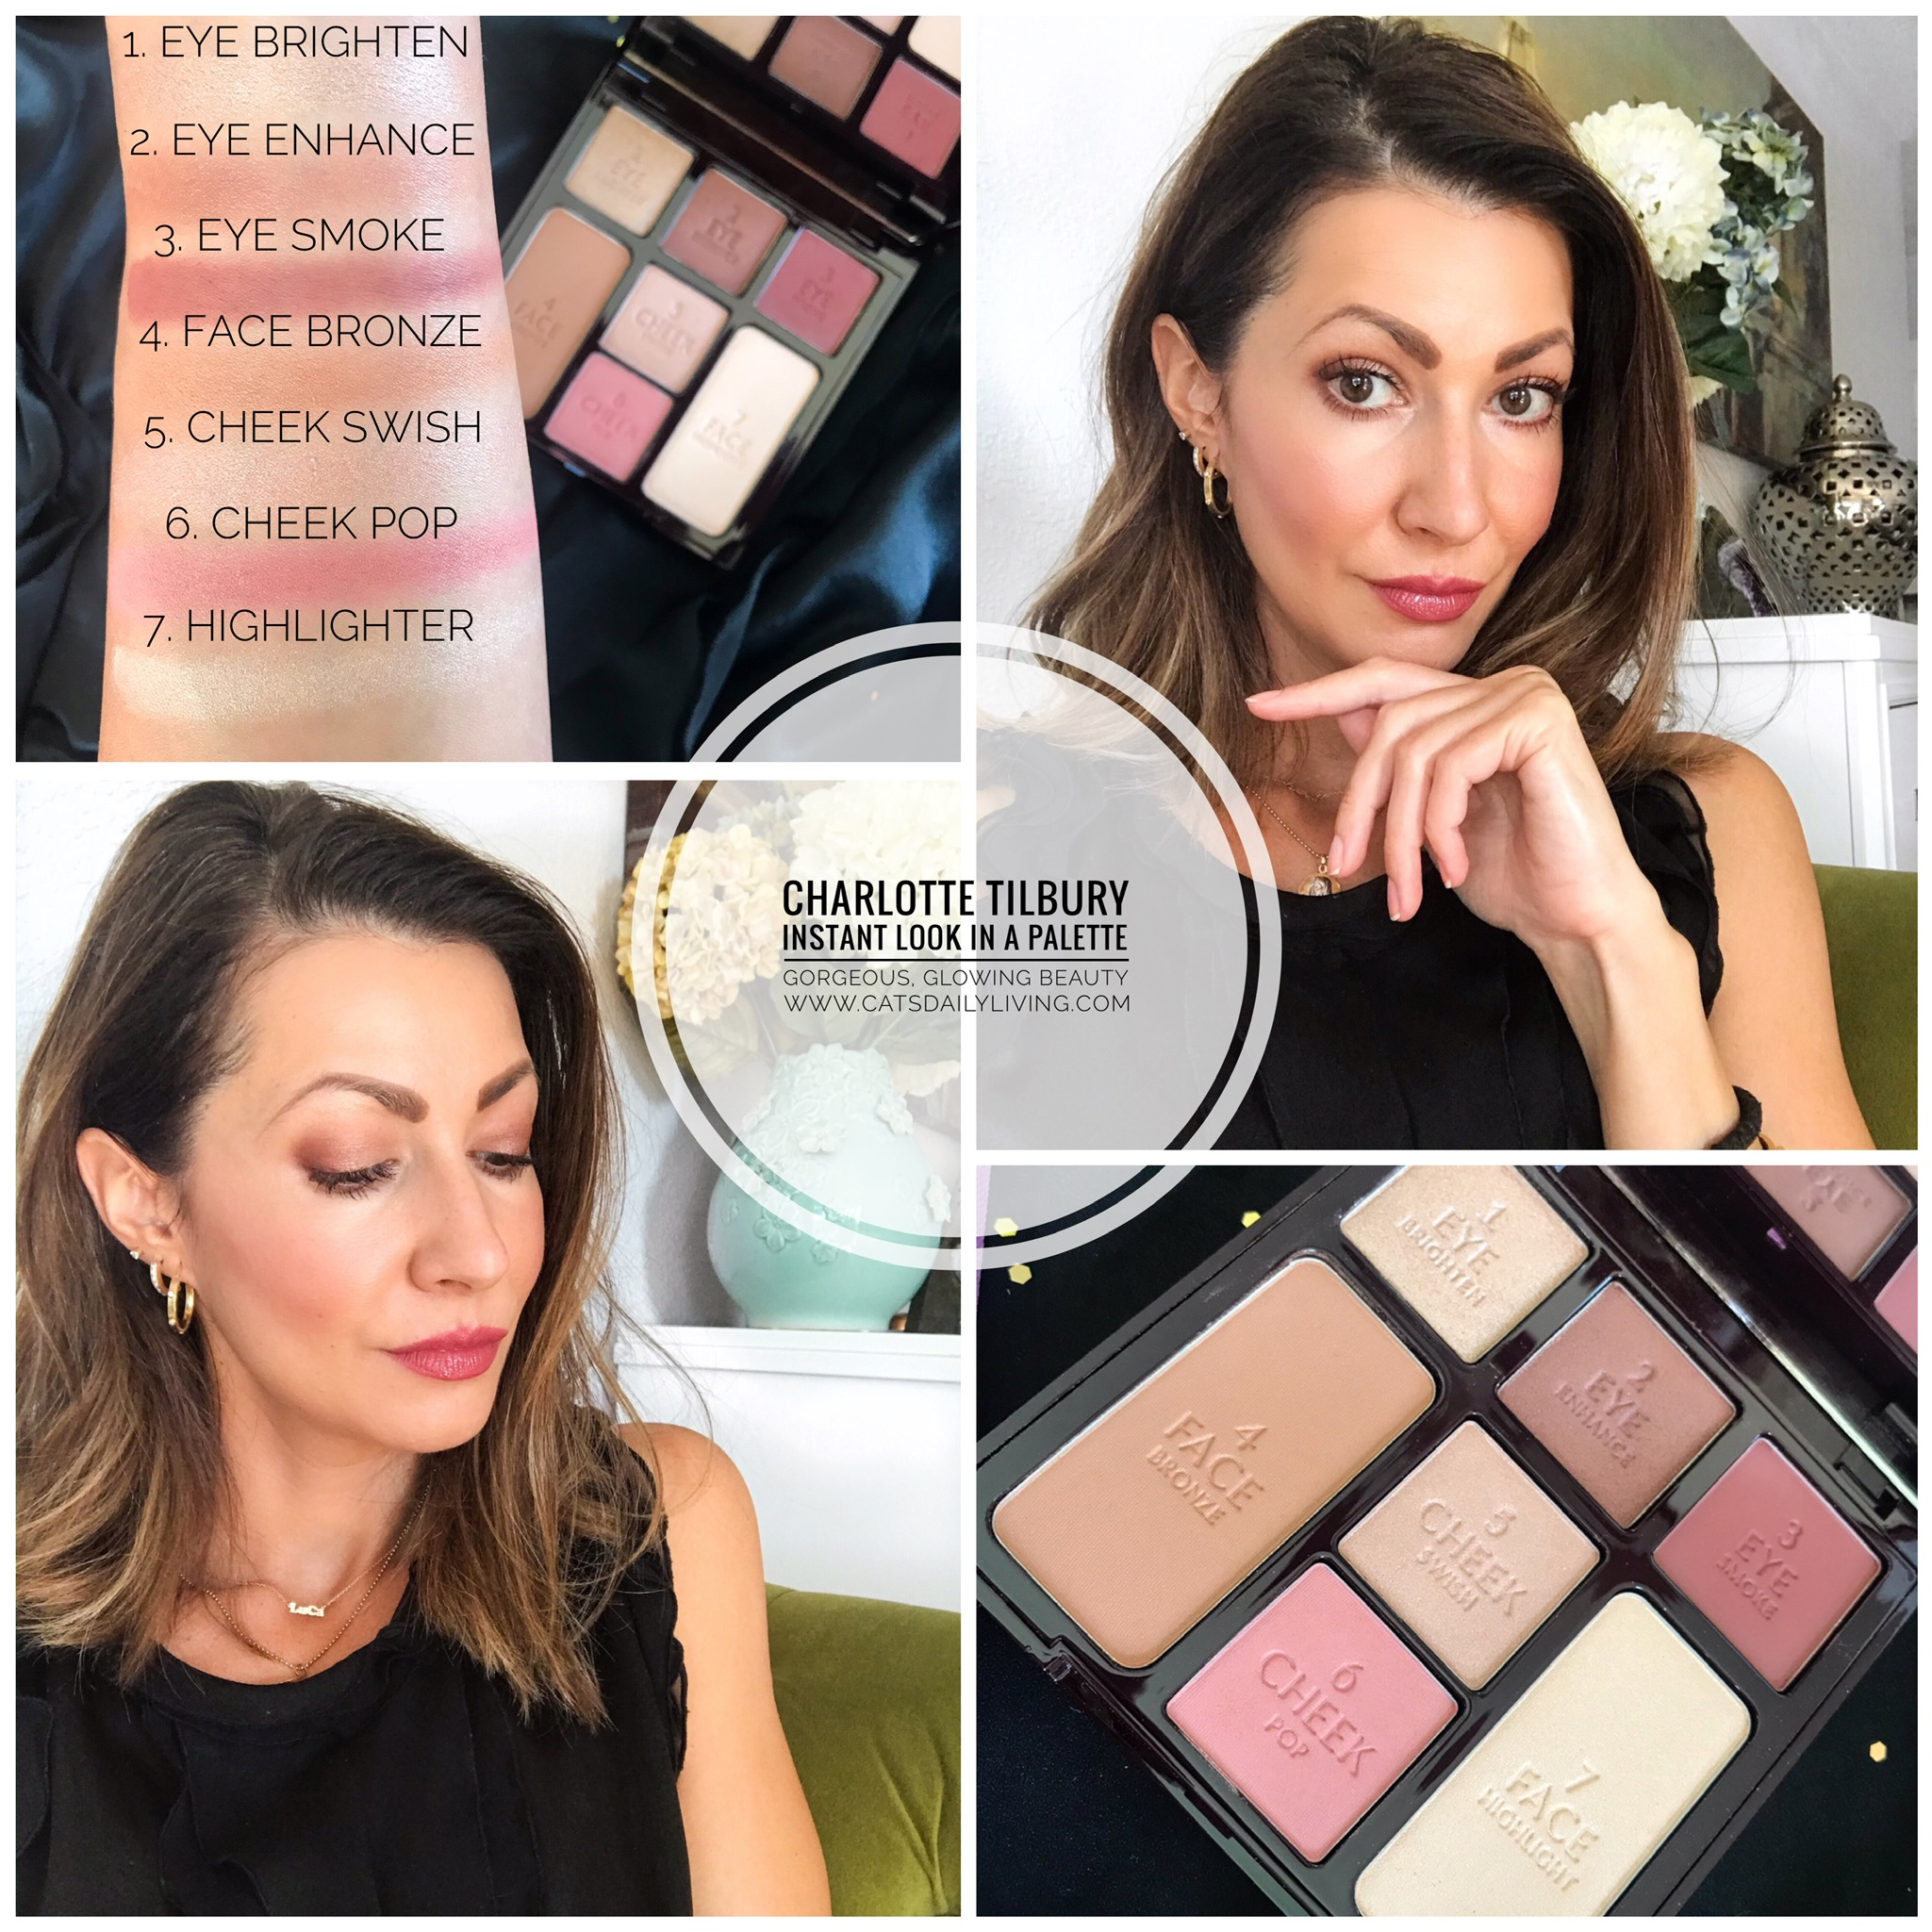 Charlotte Tilbury Instant Look In A Palette Gorgeous Glowing Palette Review And Swatches Cat S Daily Living